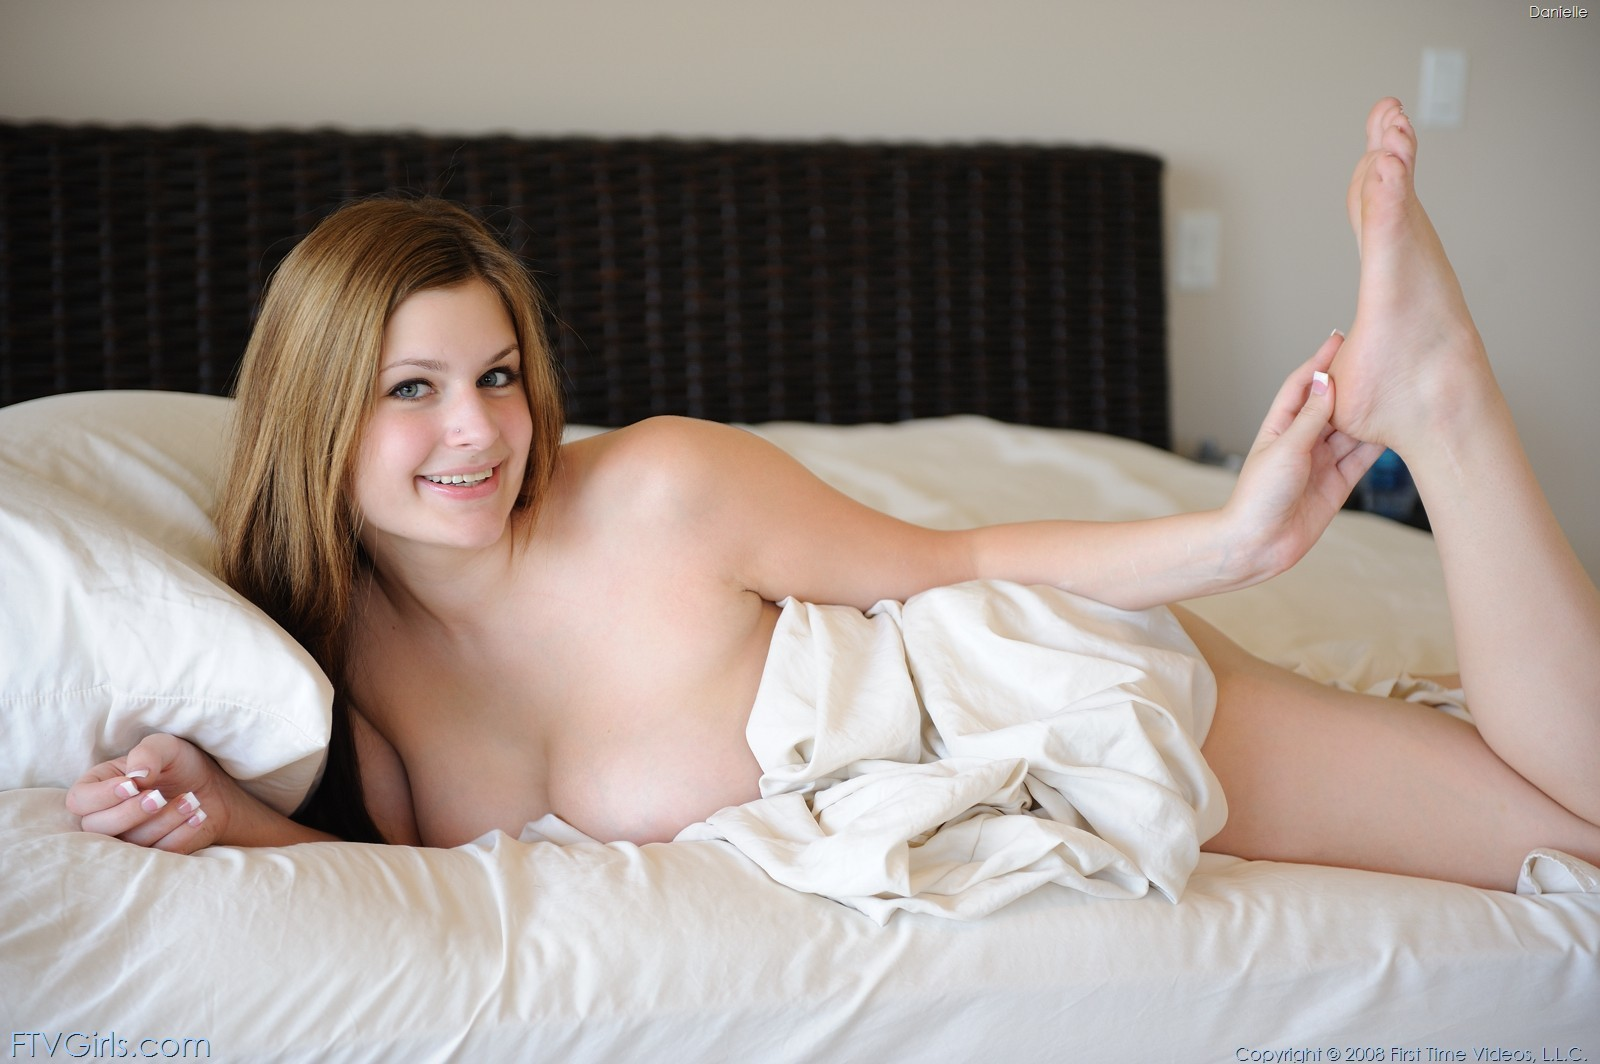 Naked Woman Under Blanket Stock Photos